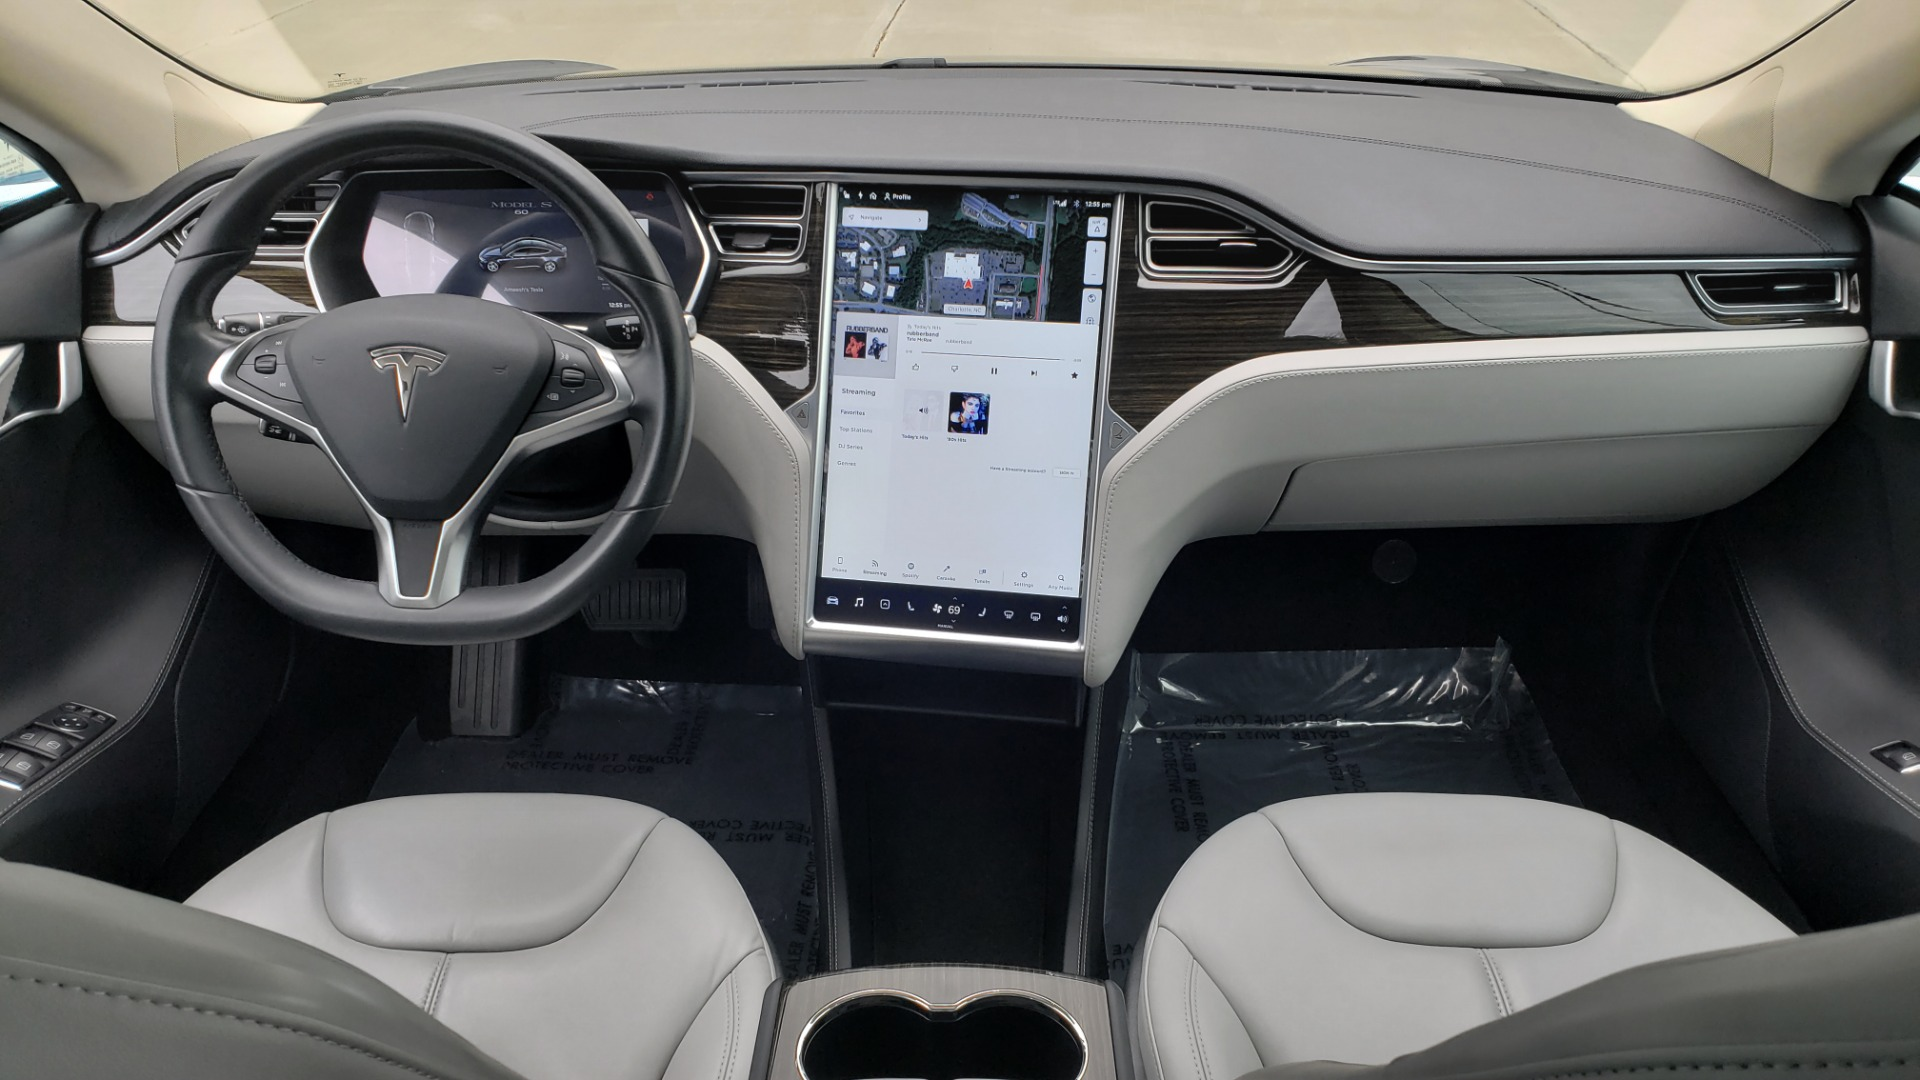 Used 2014 Tesla MODEL S 60 kWh BATTERY / TECH / NAV / SUBZERO / SUNROOF / REARVIEW for sale Sold at Formula Imports in Charlotte NC 28227 63